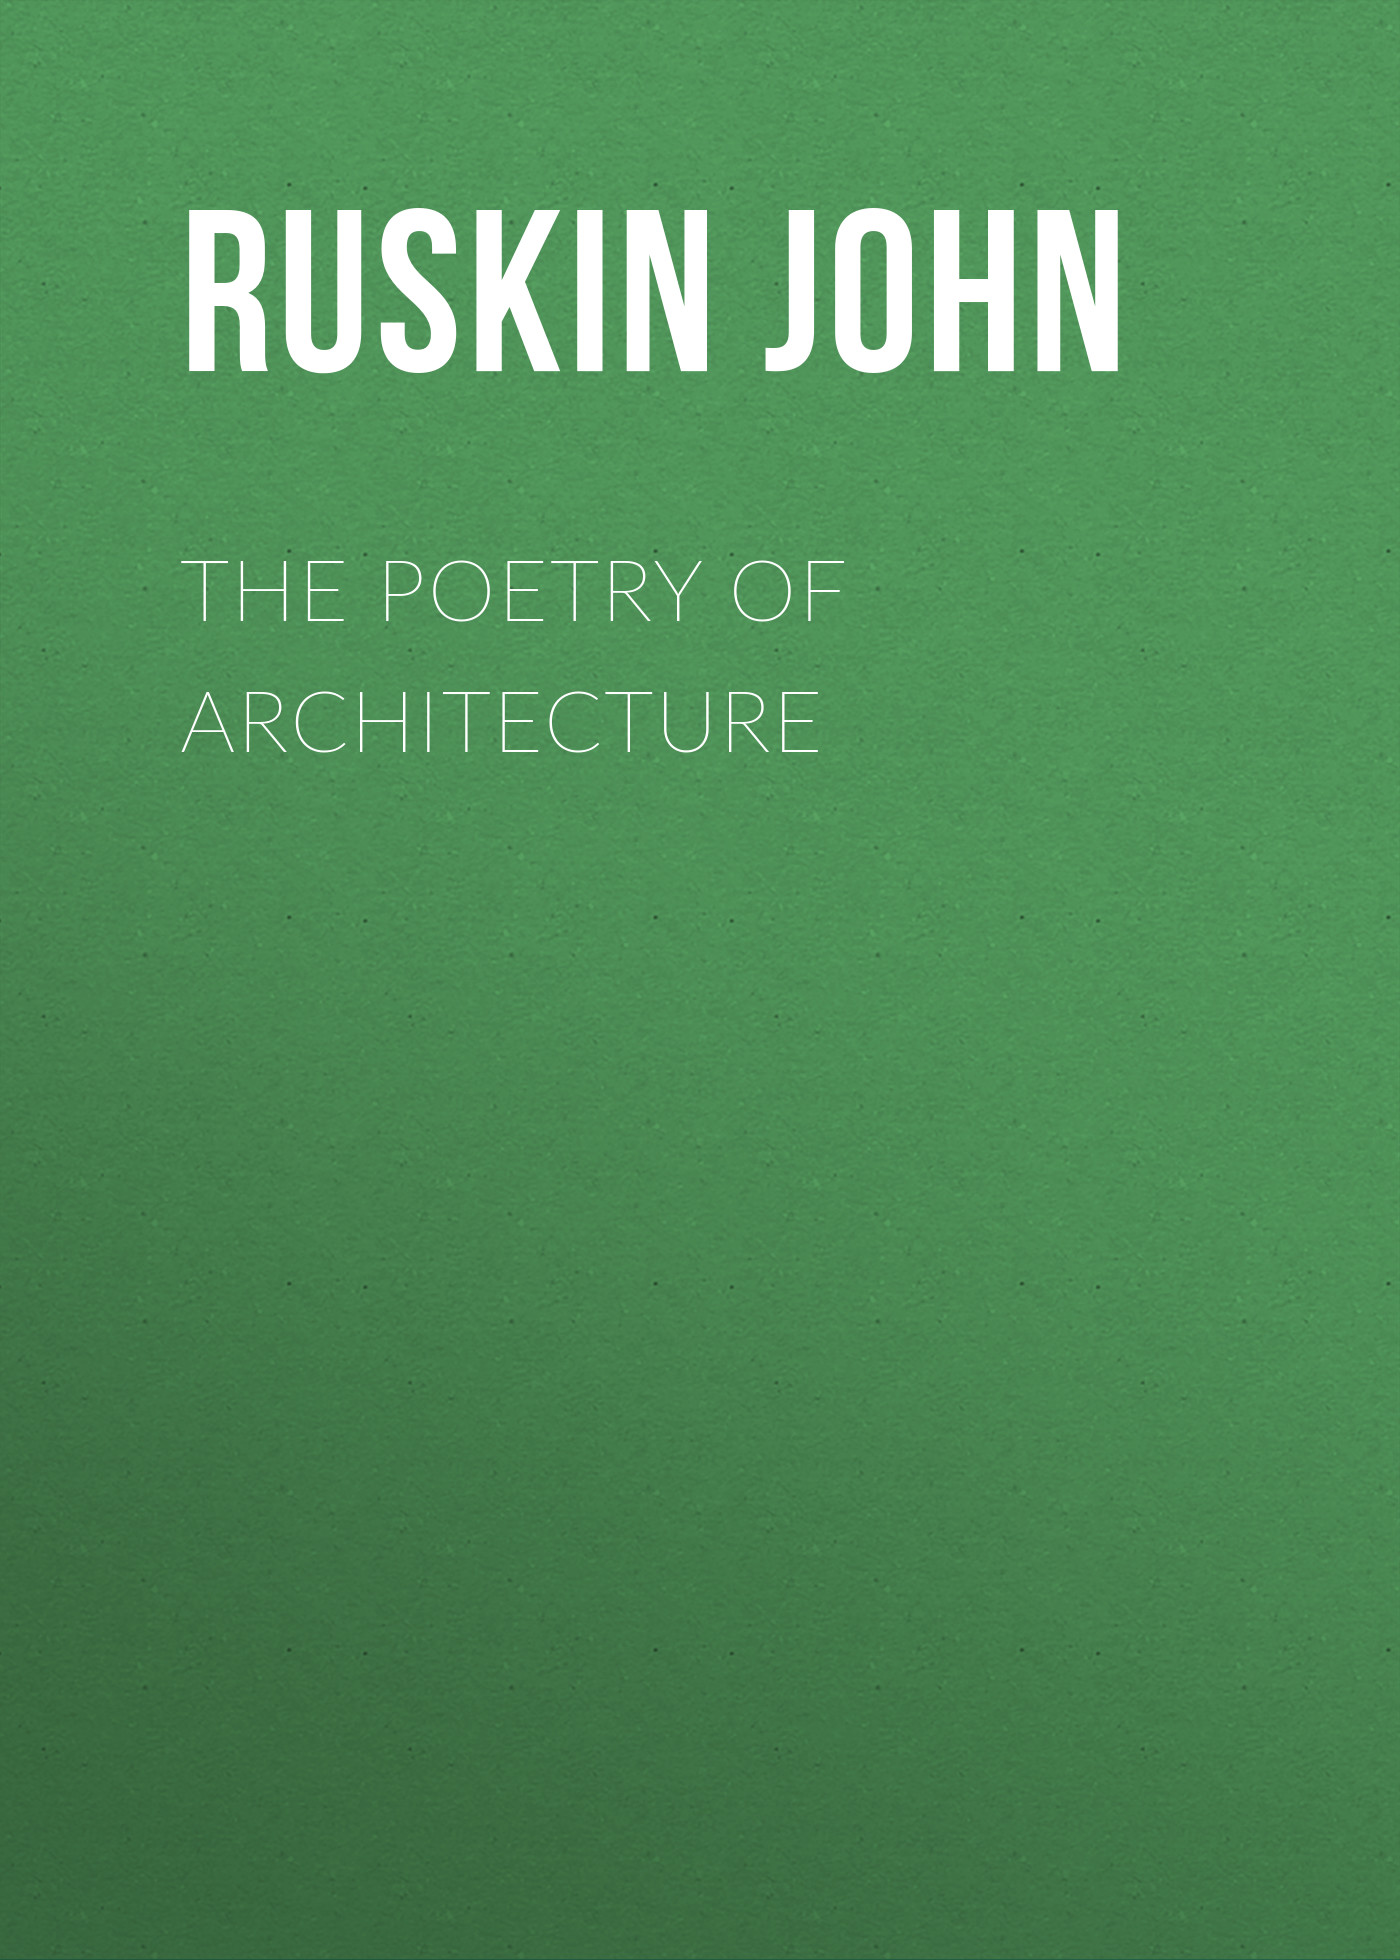 лучшая цена Ruskin John The Poetry of Architecture